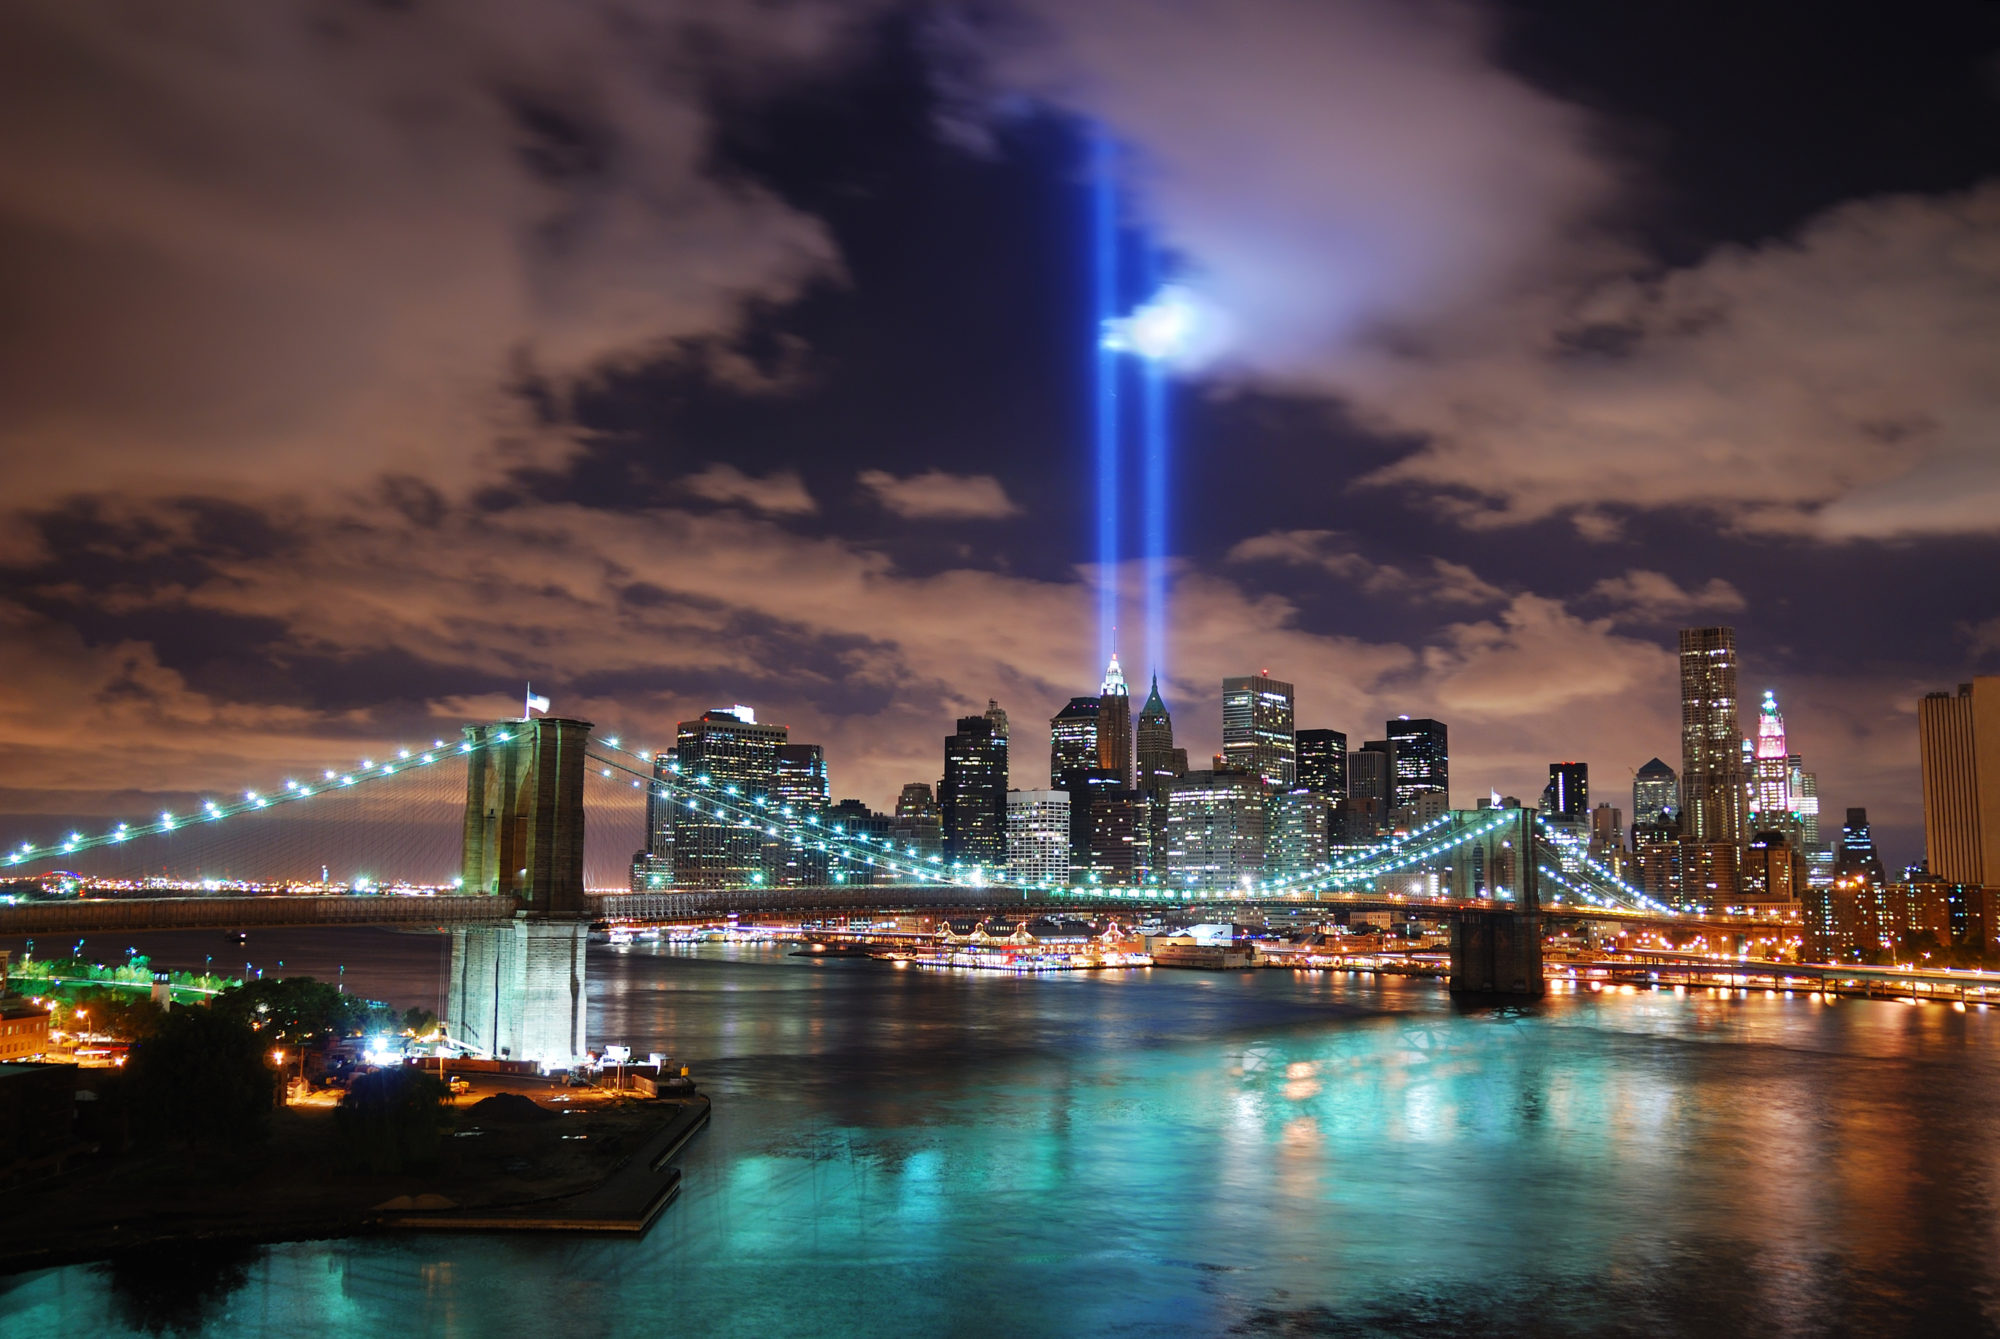 A view of Manhattan from over the Hudson River, with two light beams in memory of September 11. Photo © Songquan Deng | Dreamstime.com